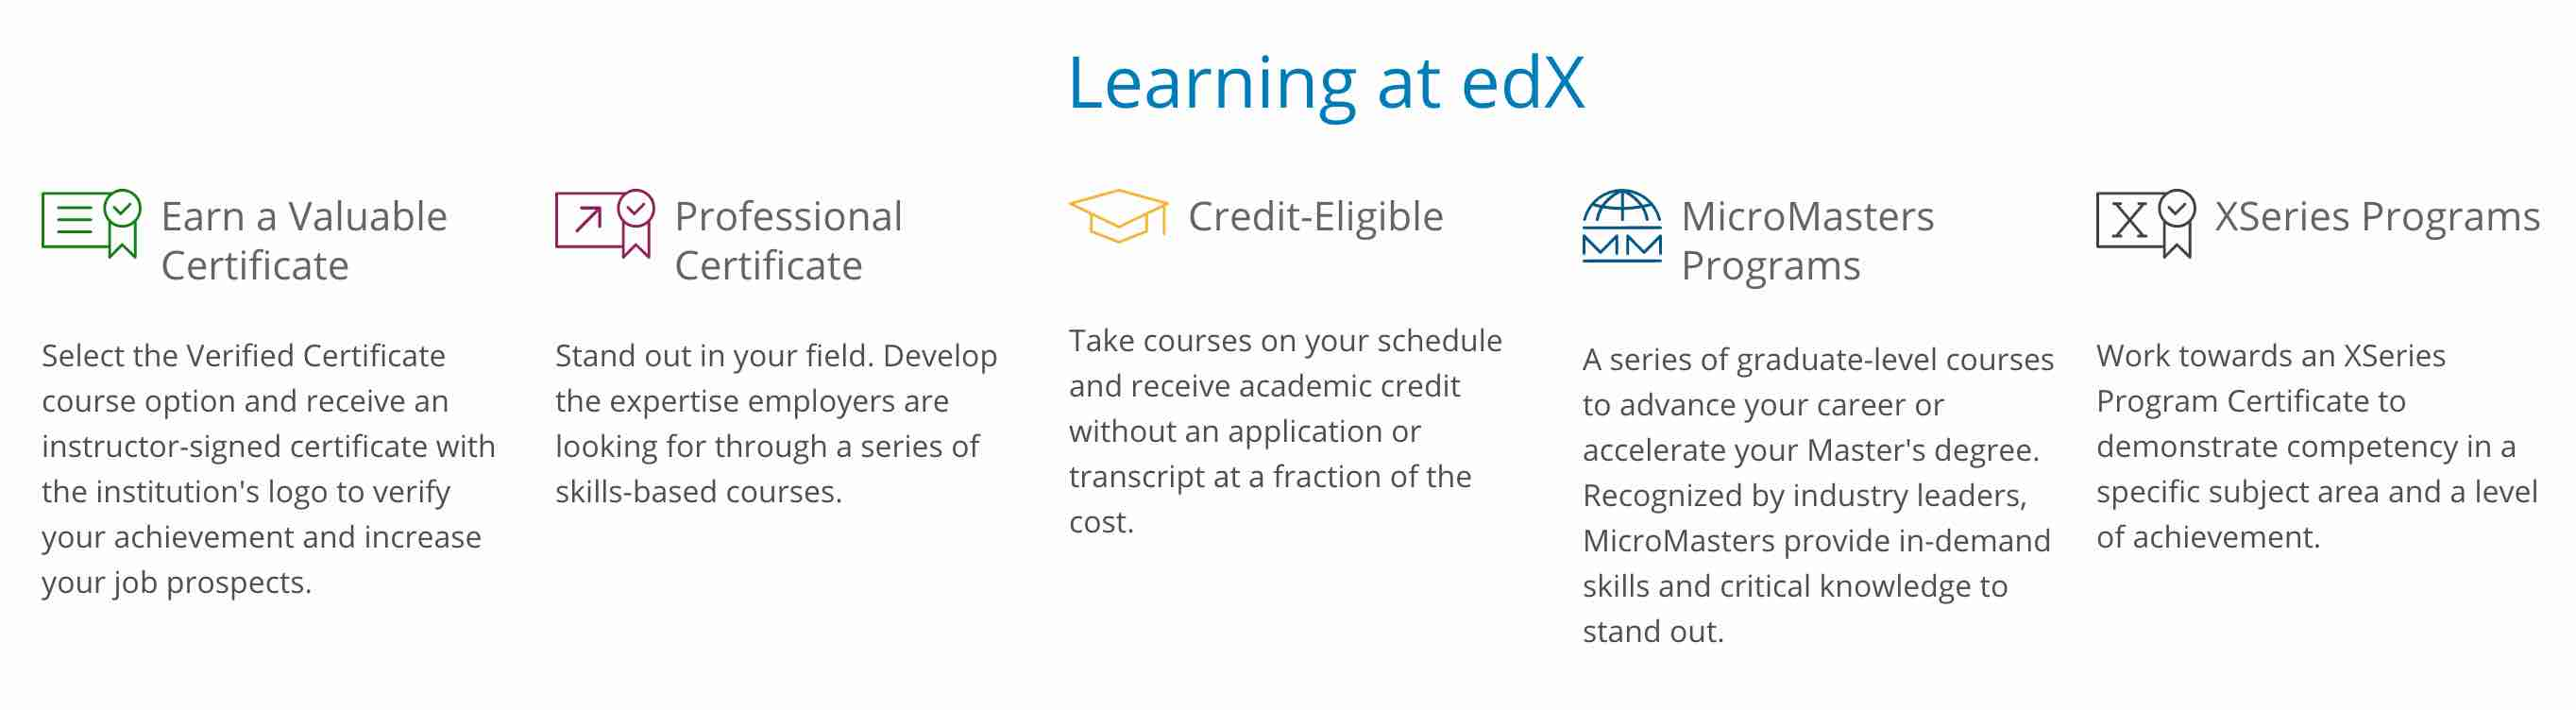 Learning at edX